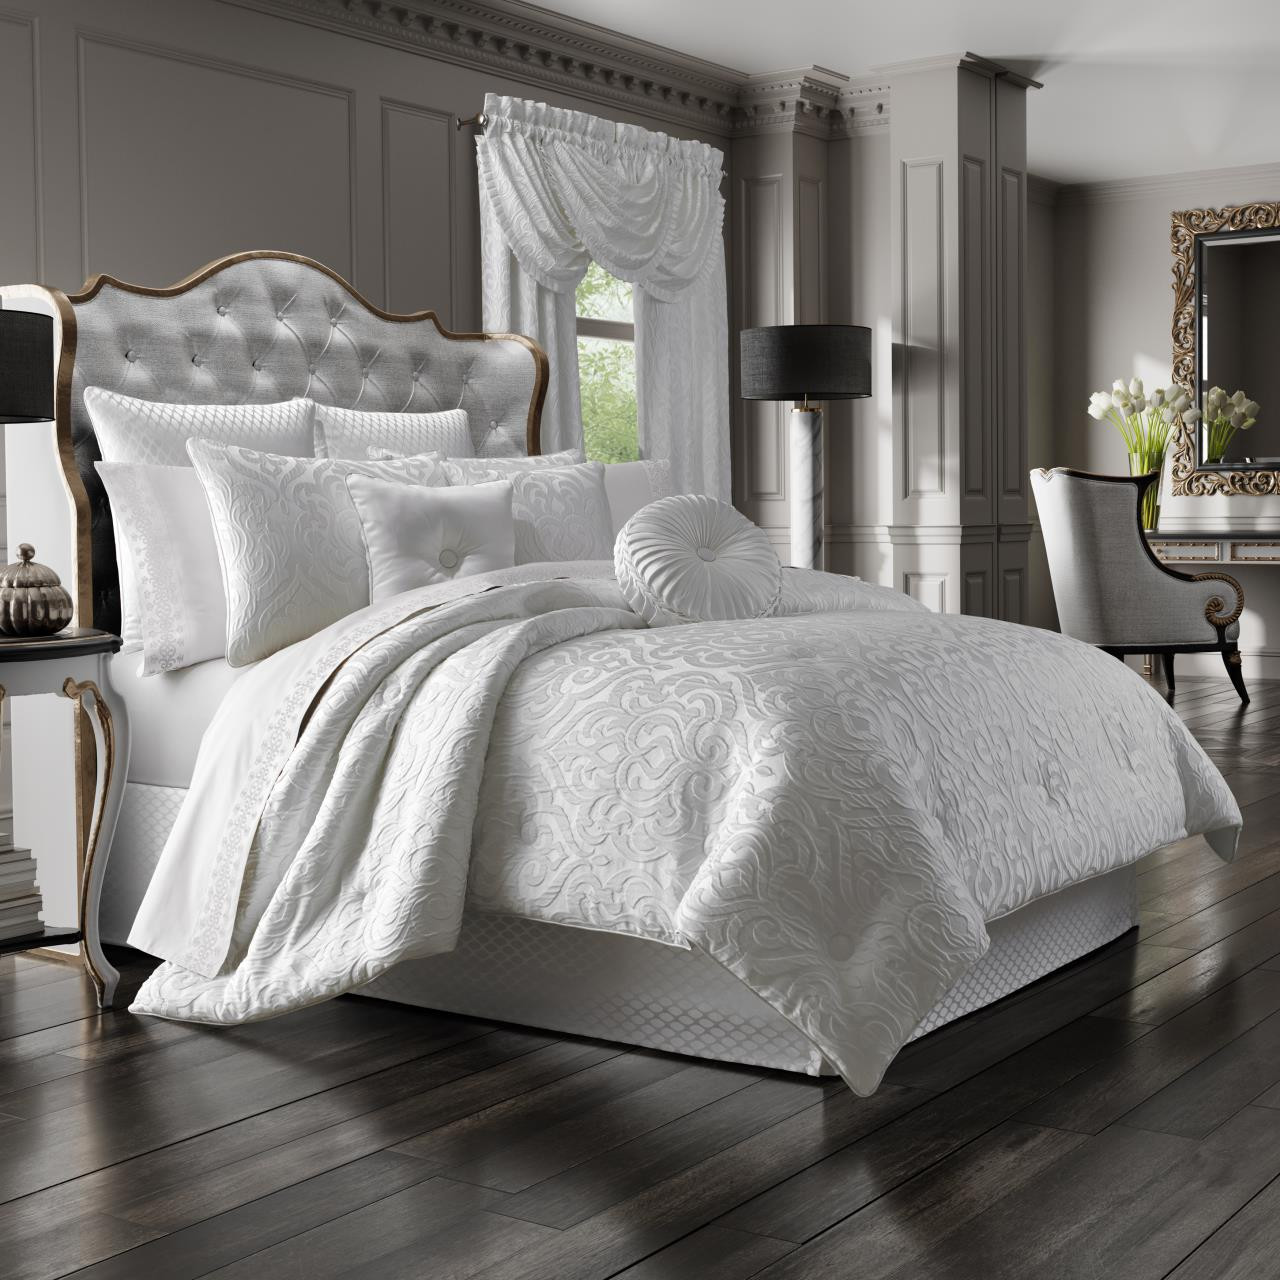 Astoria White Bedding Ensemble - 846339080418